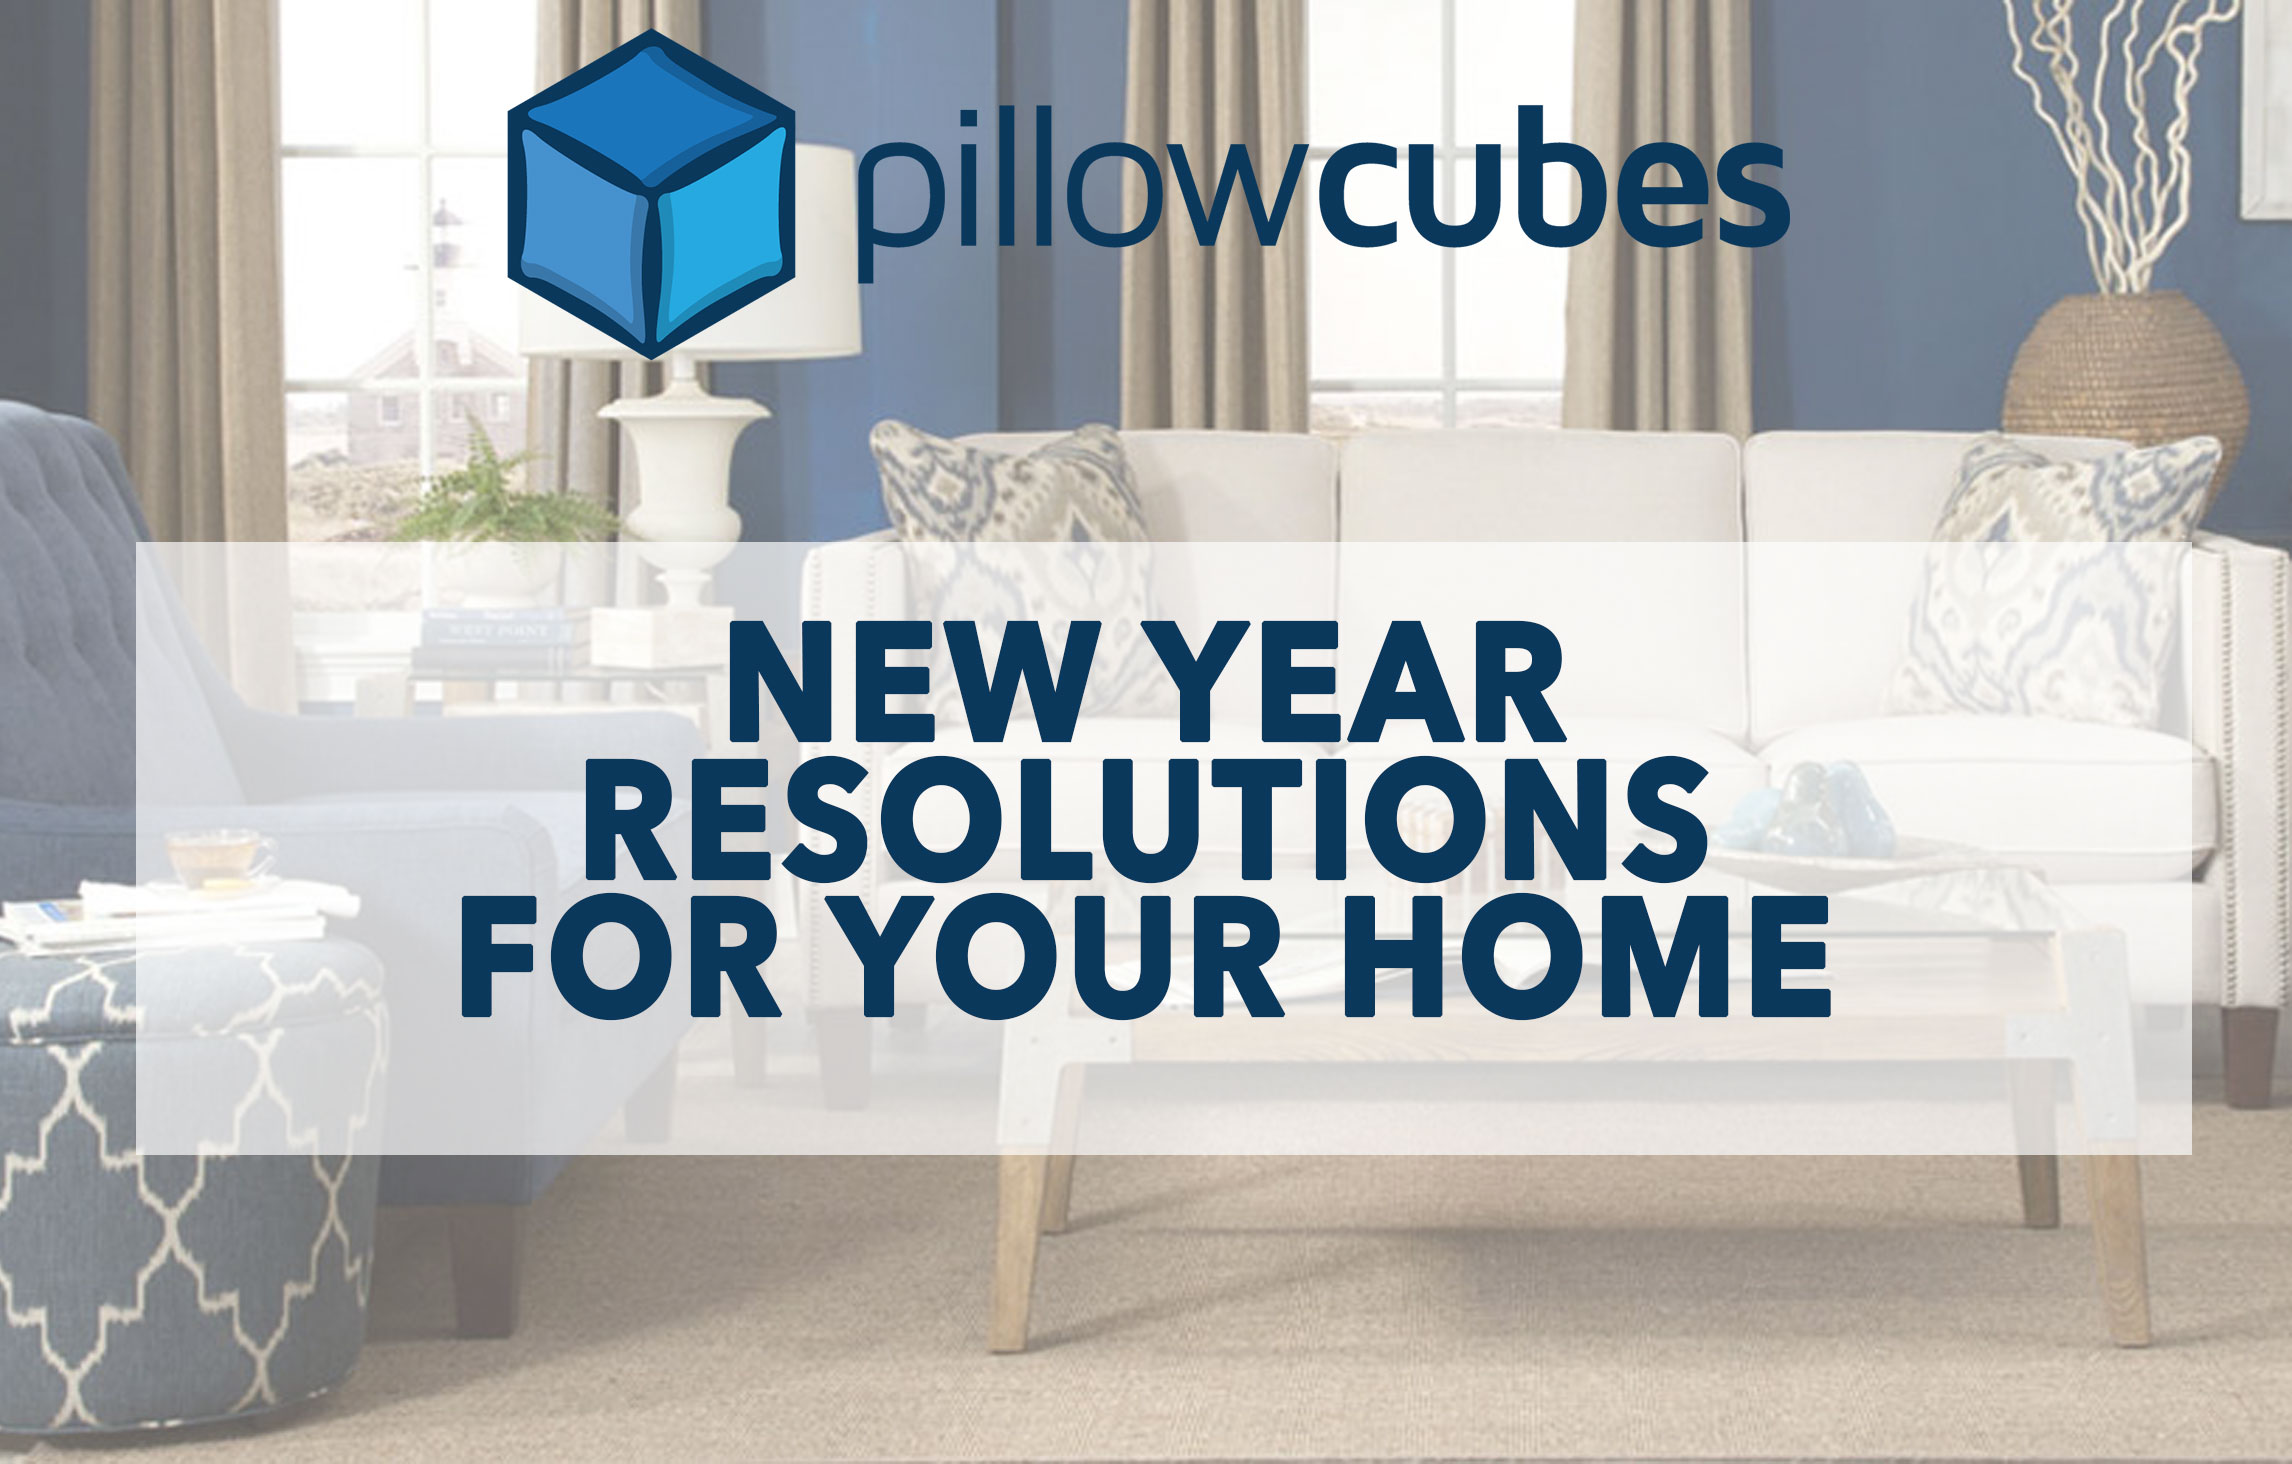 New Year Resolutions for Home